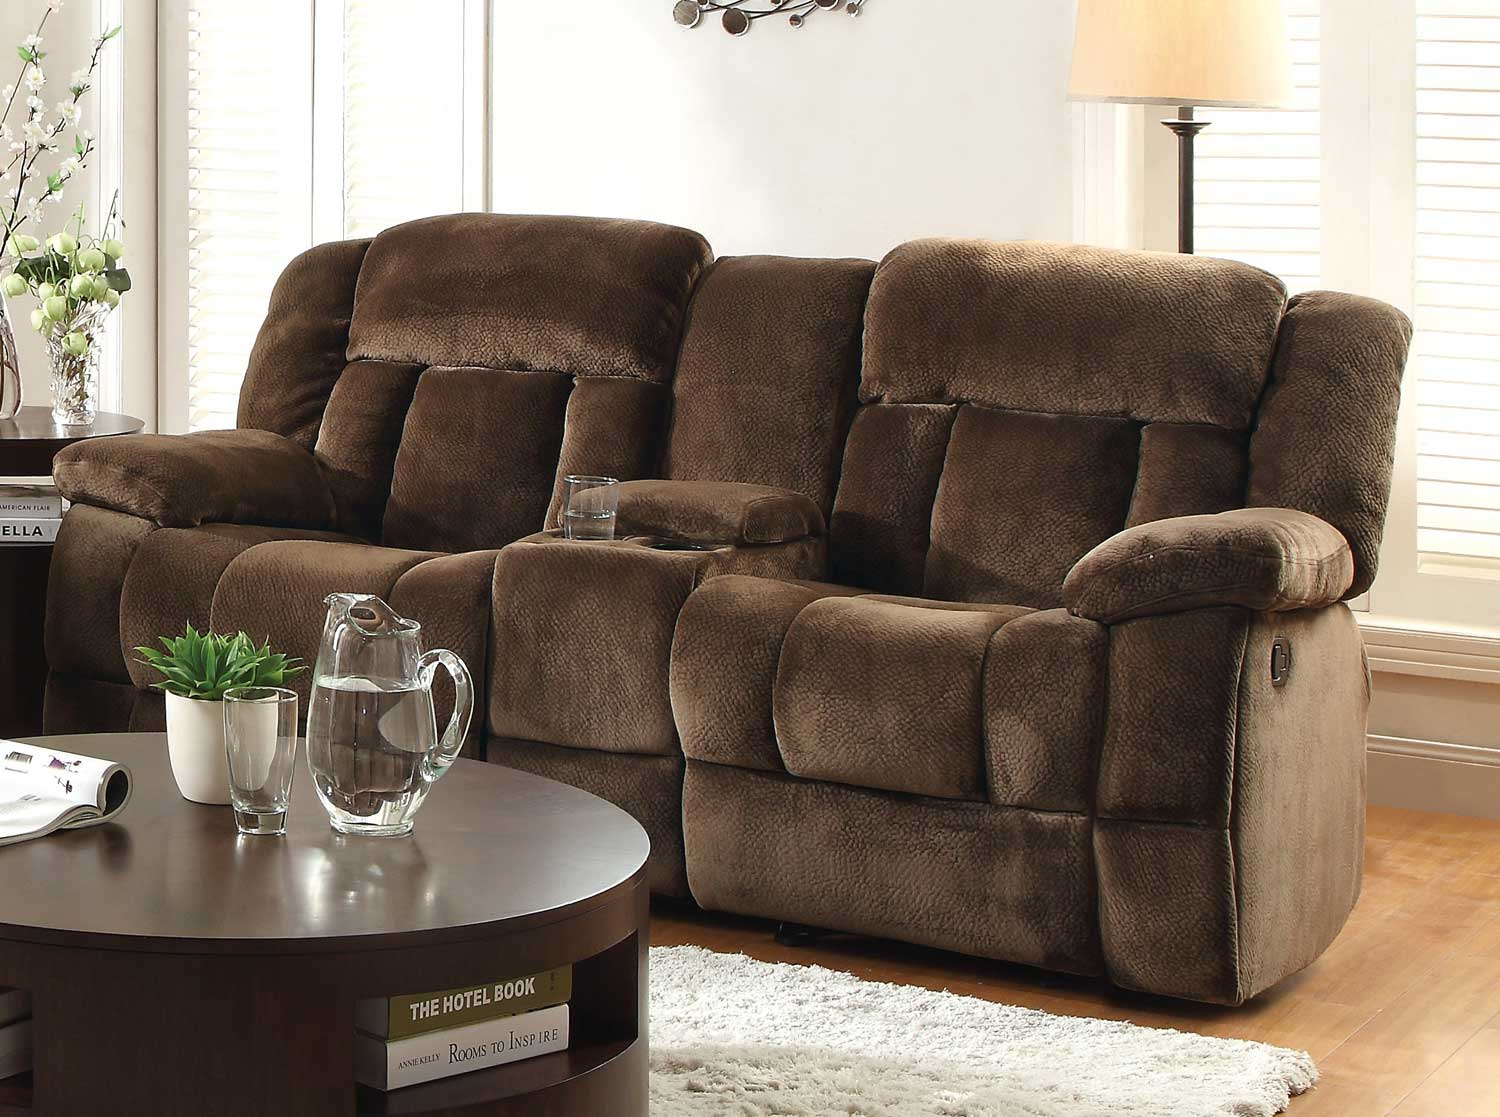 Homelegance laurelton reclining sofa set chocolate textured plush microfiber u9636 3 Reclining loveseat with center console